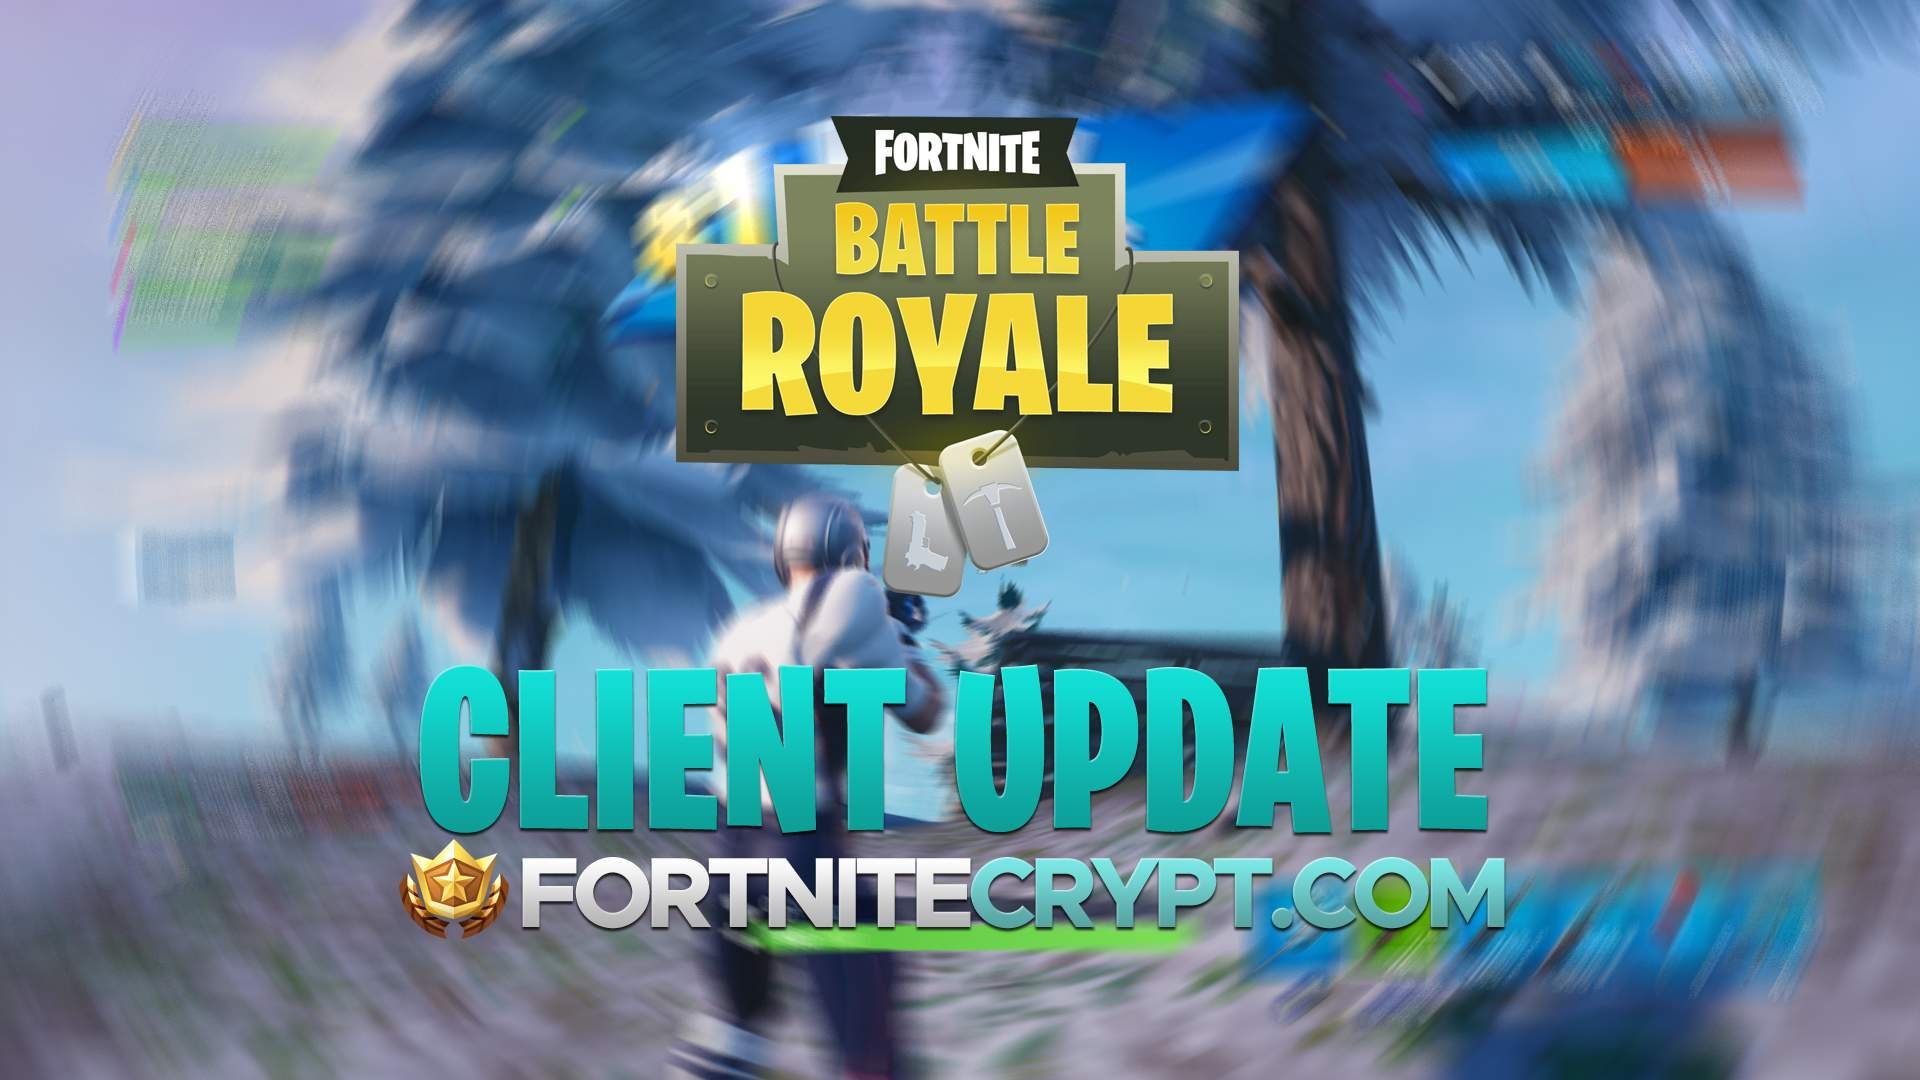 Fortnite Client epic games announce surprise fortnite patch for march 29